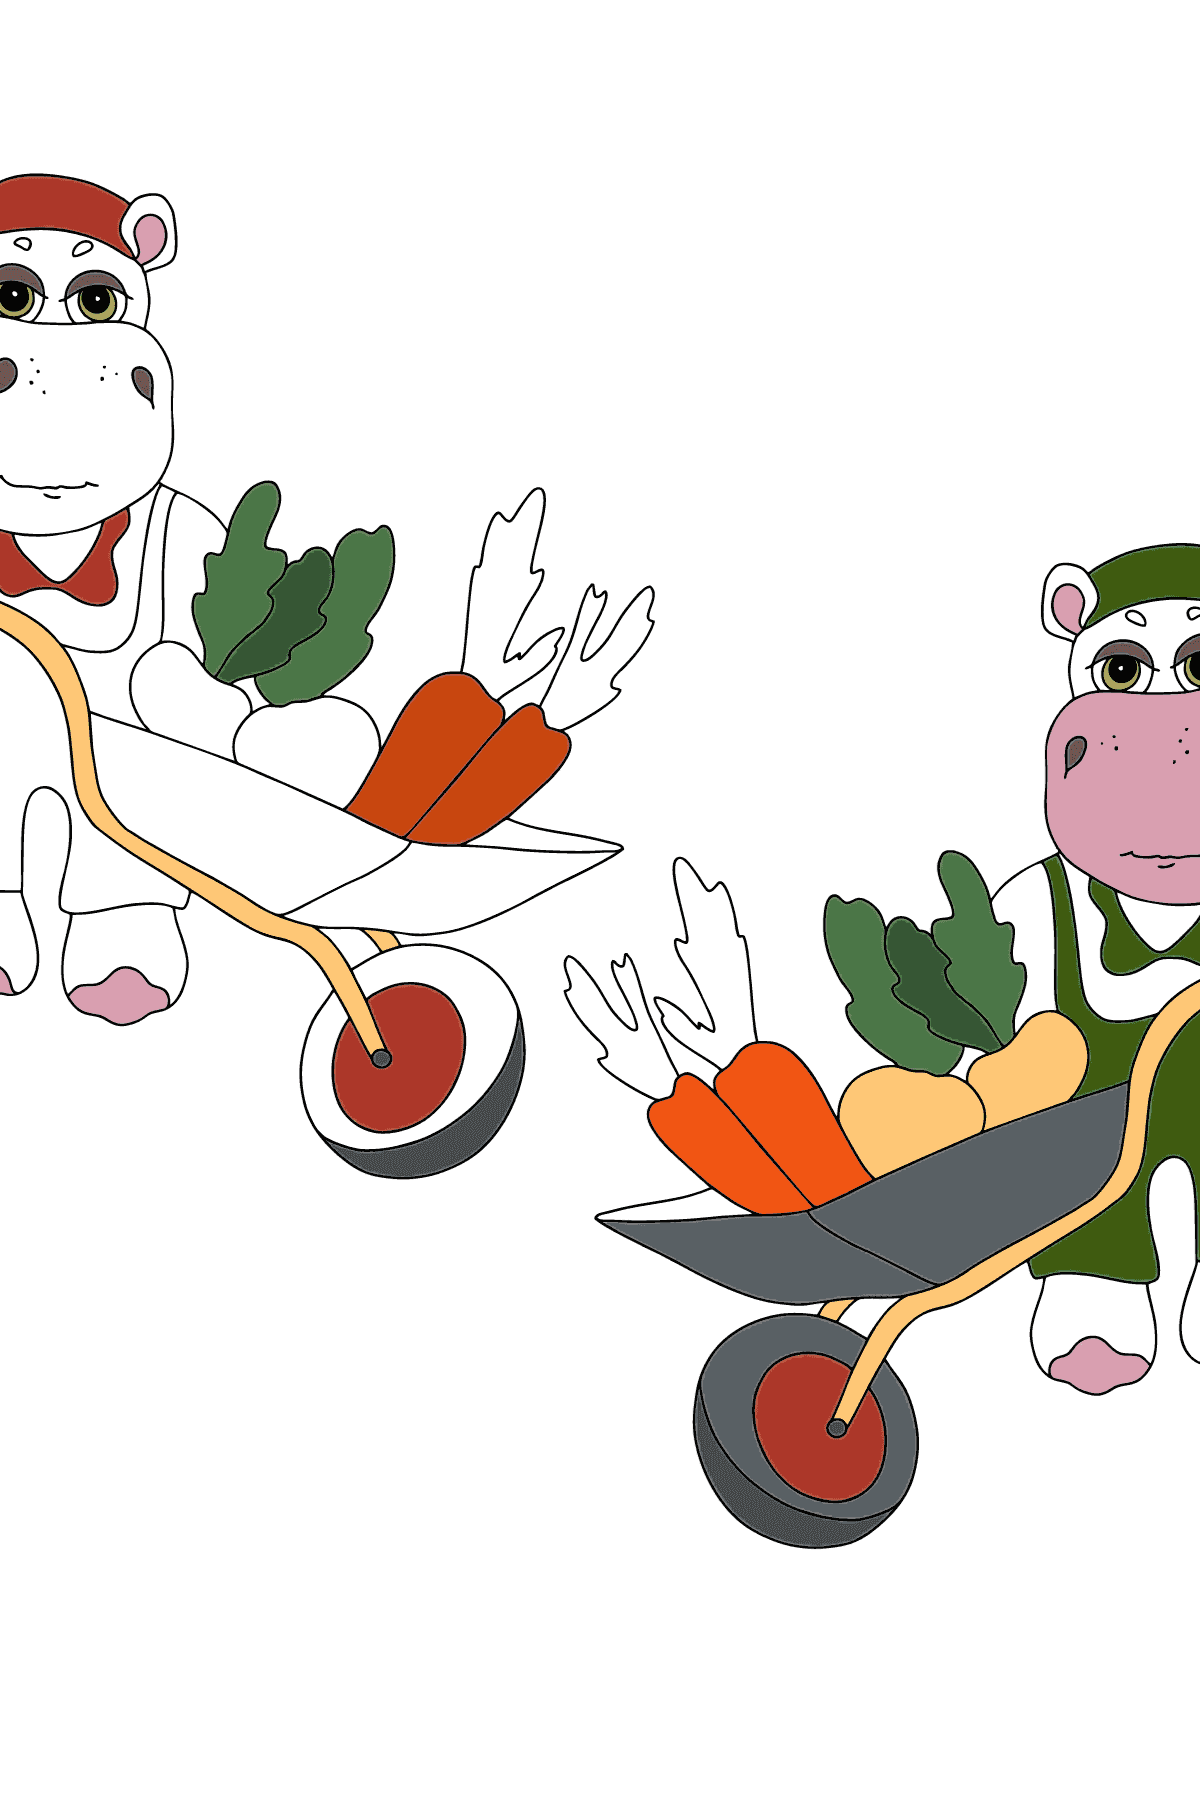 Coloring Page - Hippos in a Garden with Carts for Children